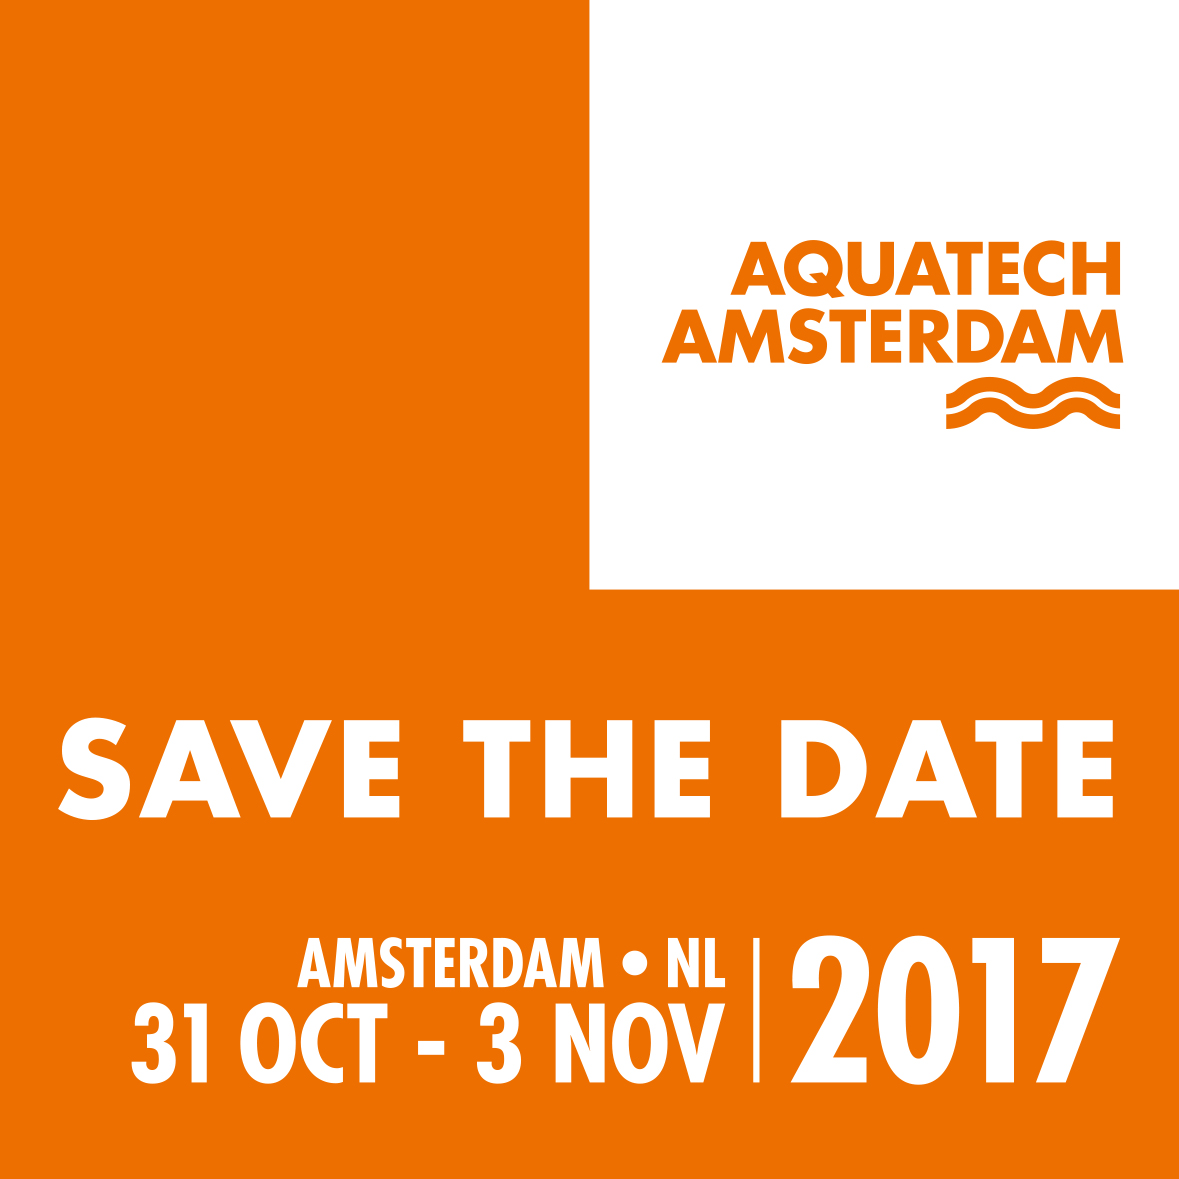 <p><strong>Aquatech Amsterdam</strong></p>